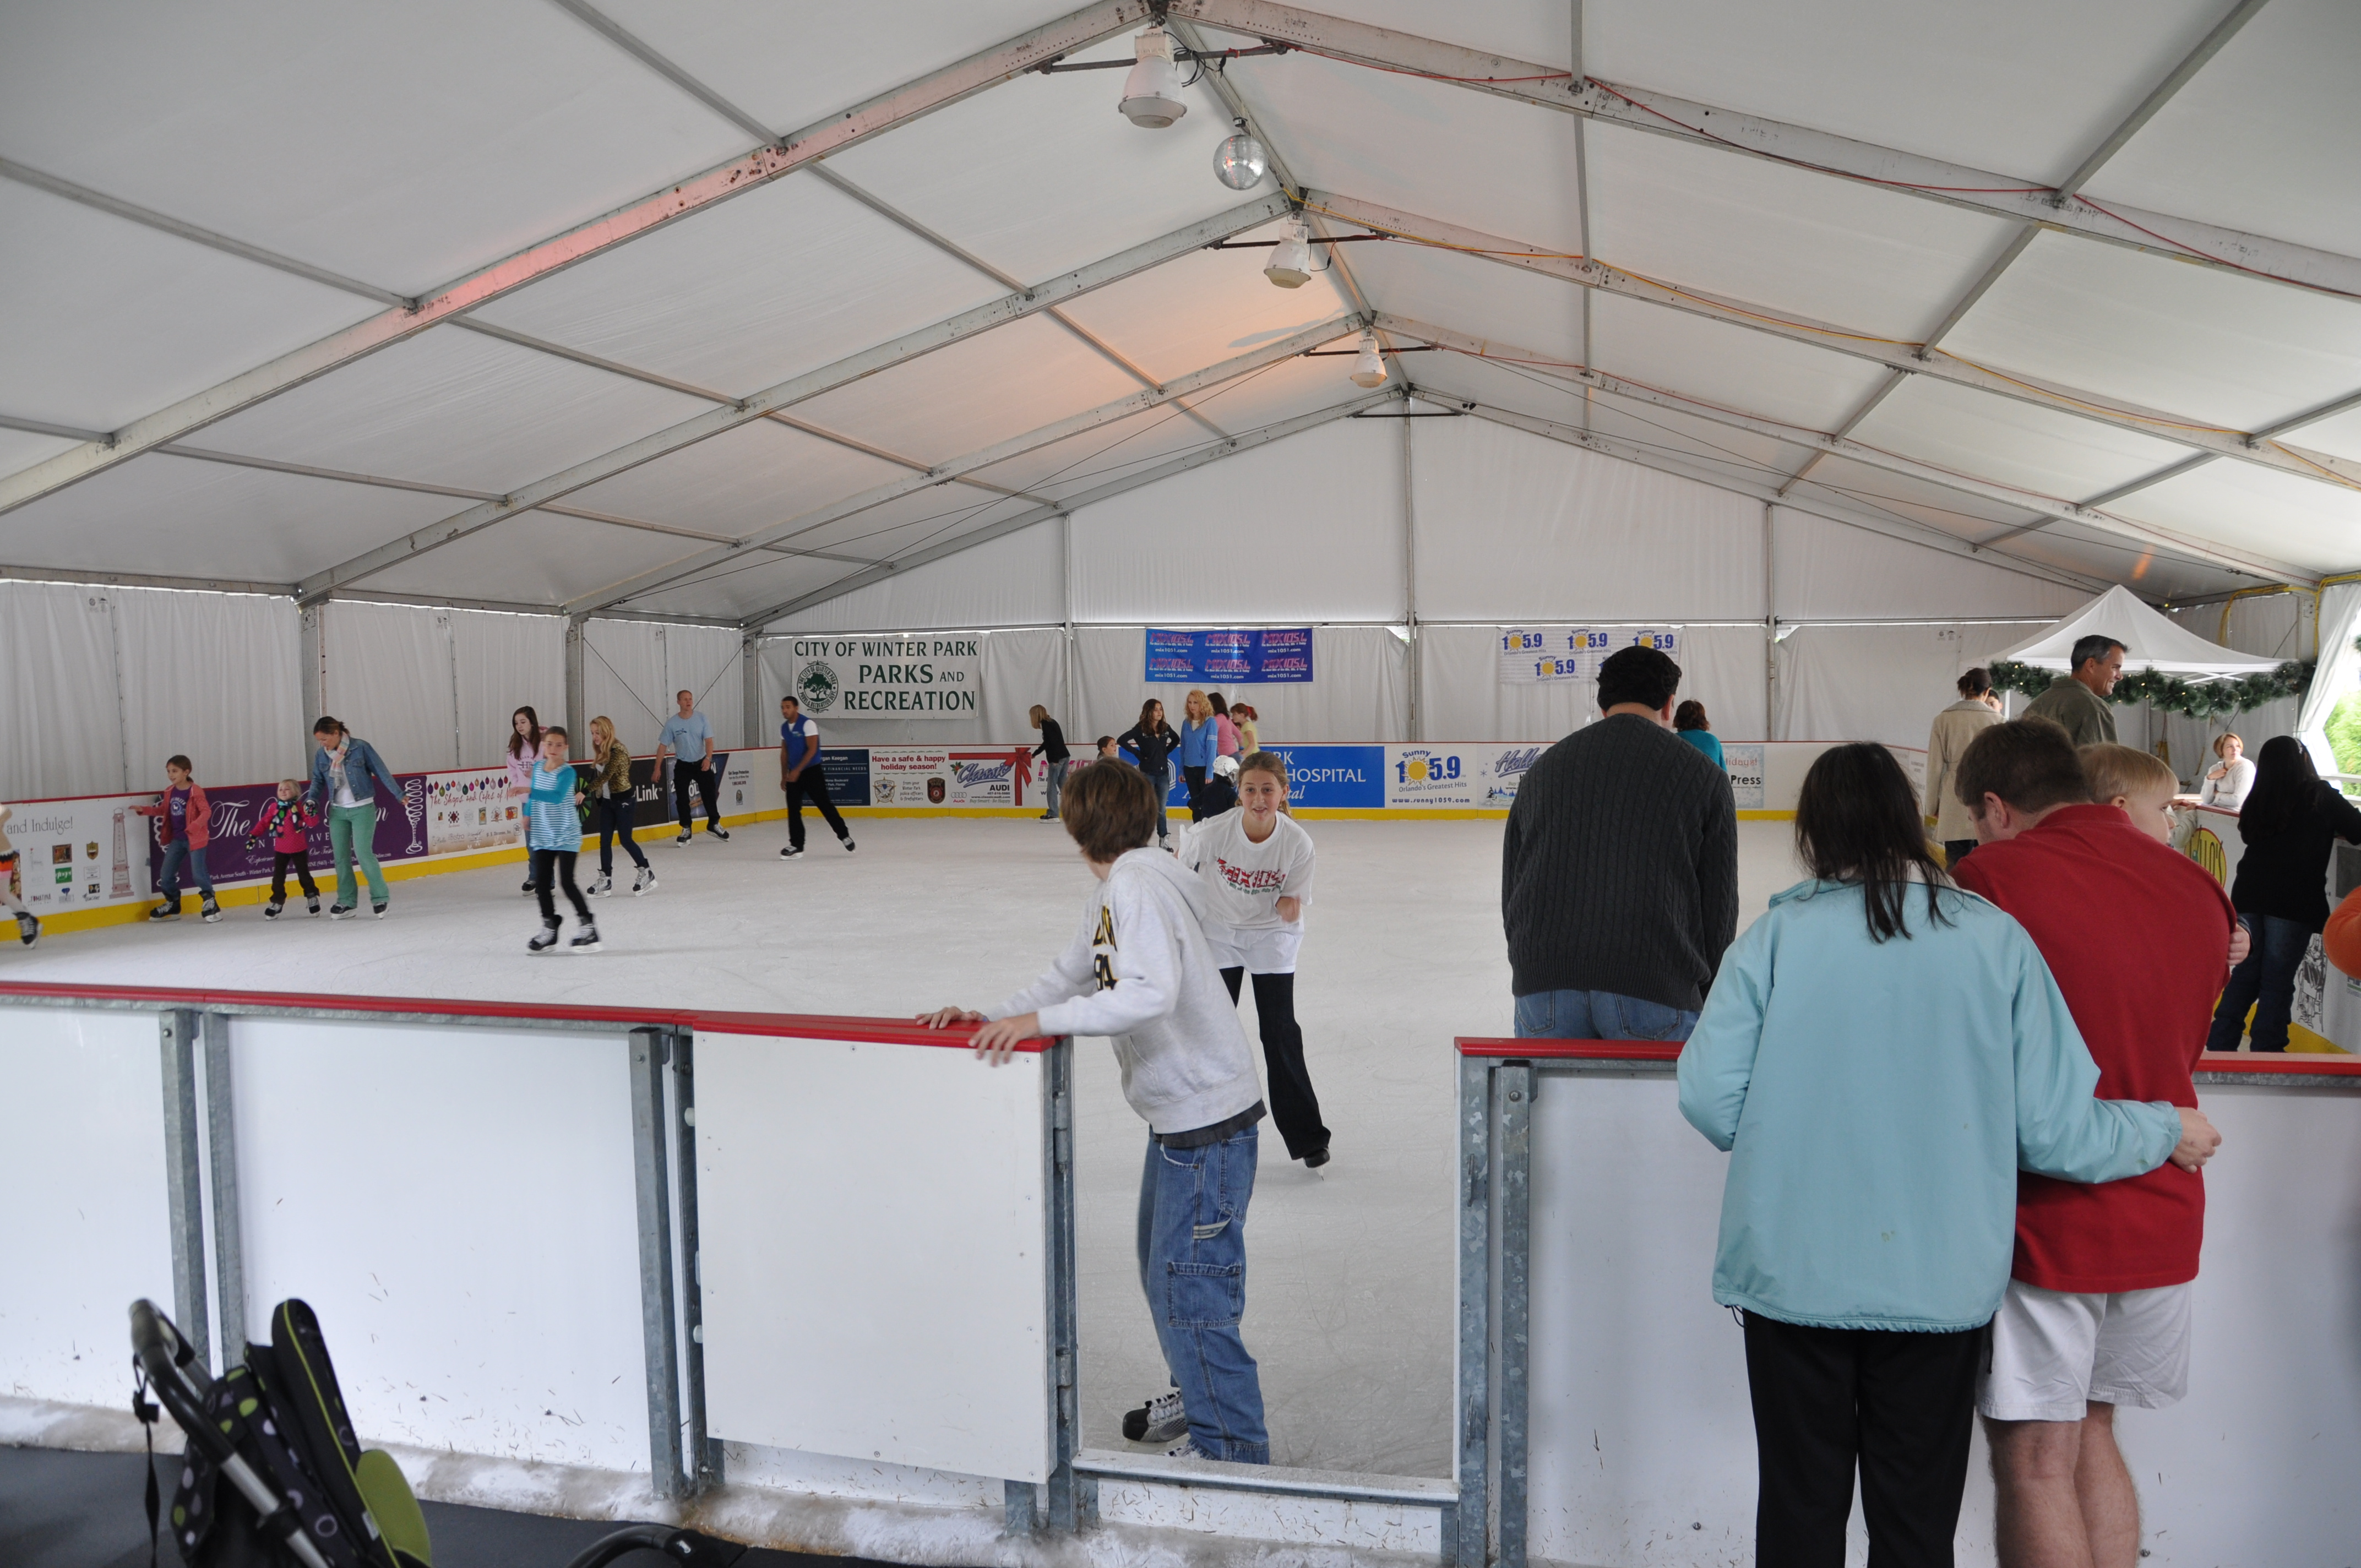 winter park outdoor ice skating during the holidays in central